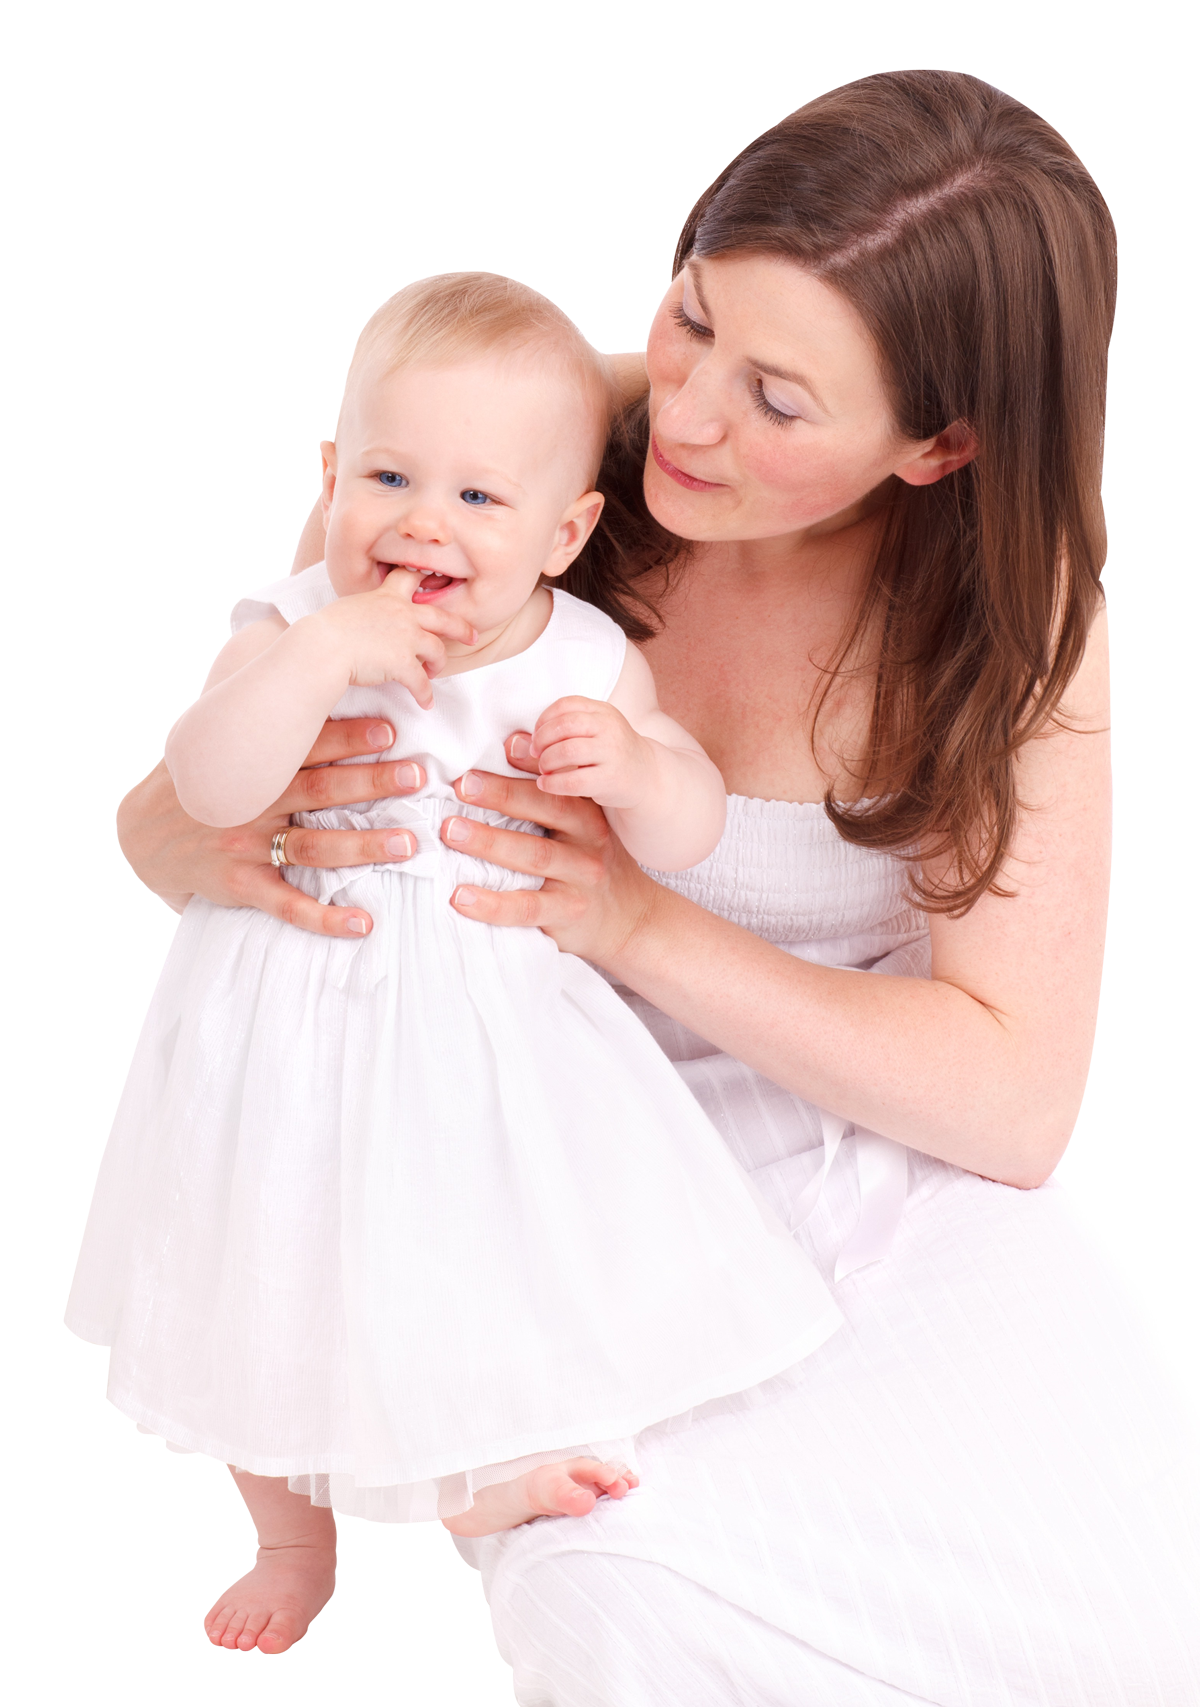 Woman with kid PNG Image